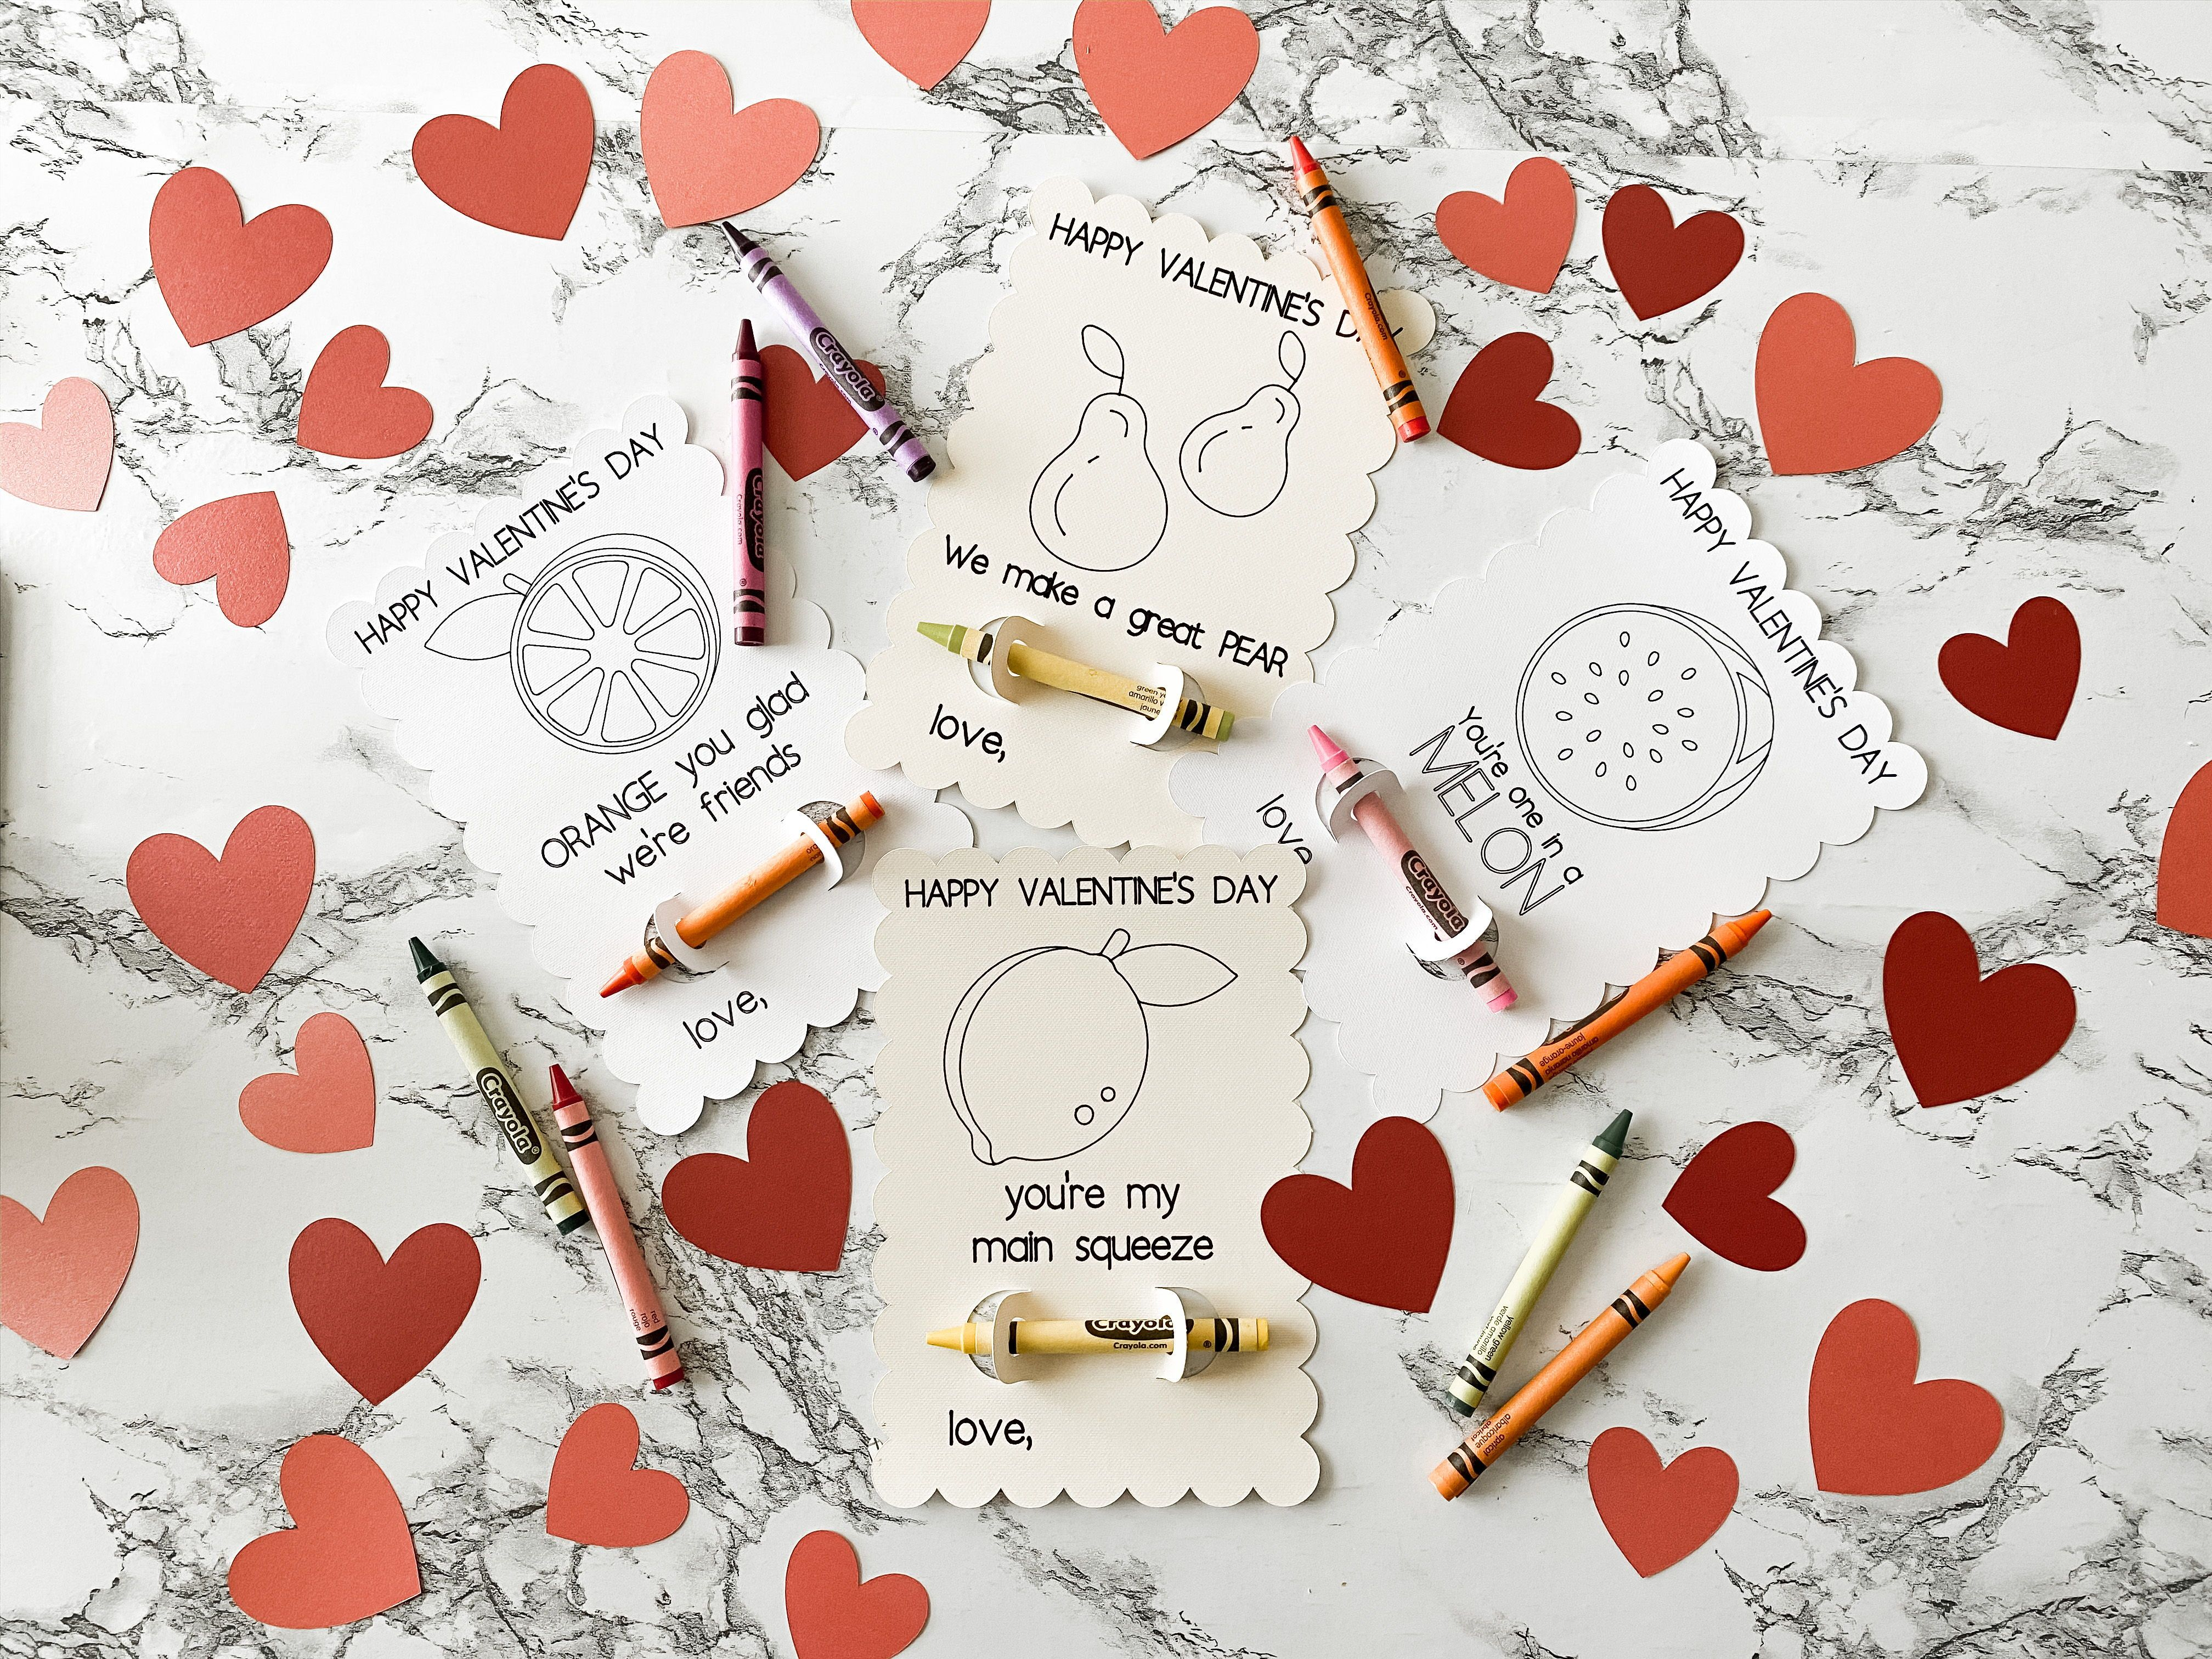 Cricut Valentine S Day Cards For Kids In 2020 Cricut Valentines Projects Valentine S Cards For Kids Valentine Day Cards